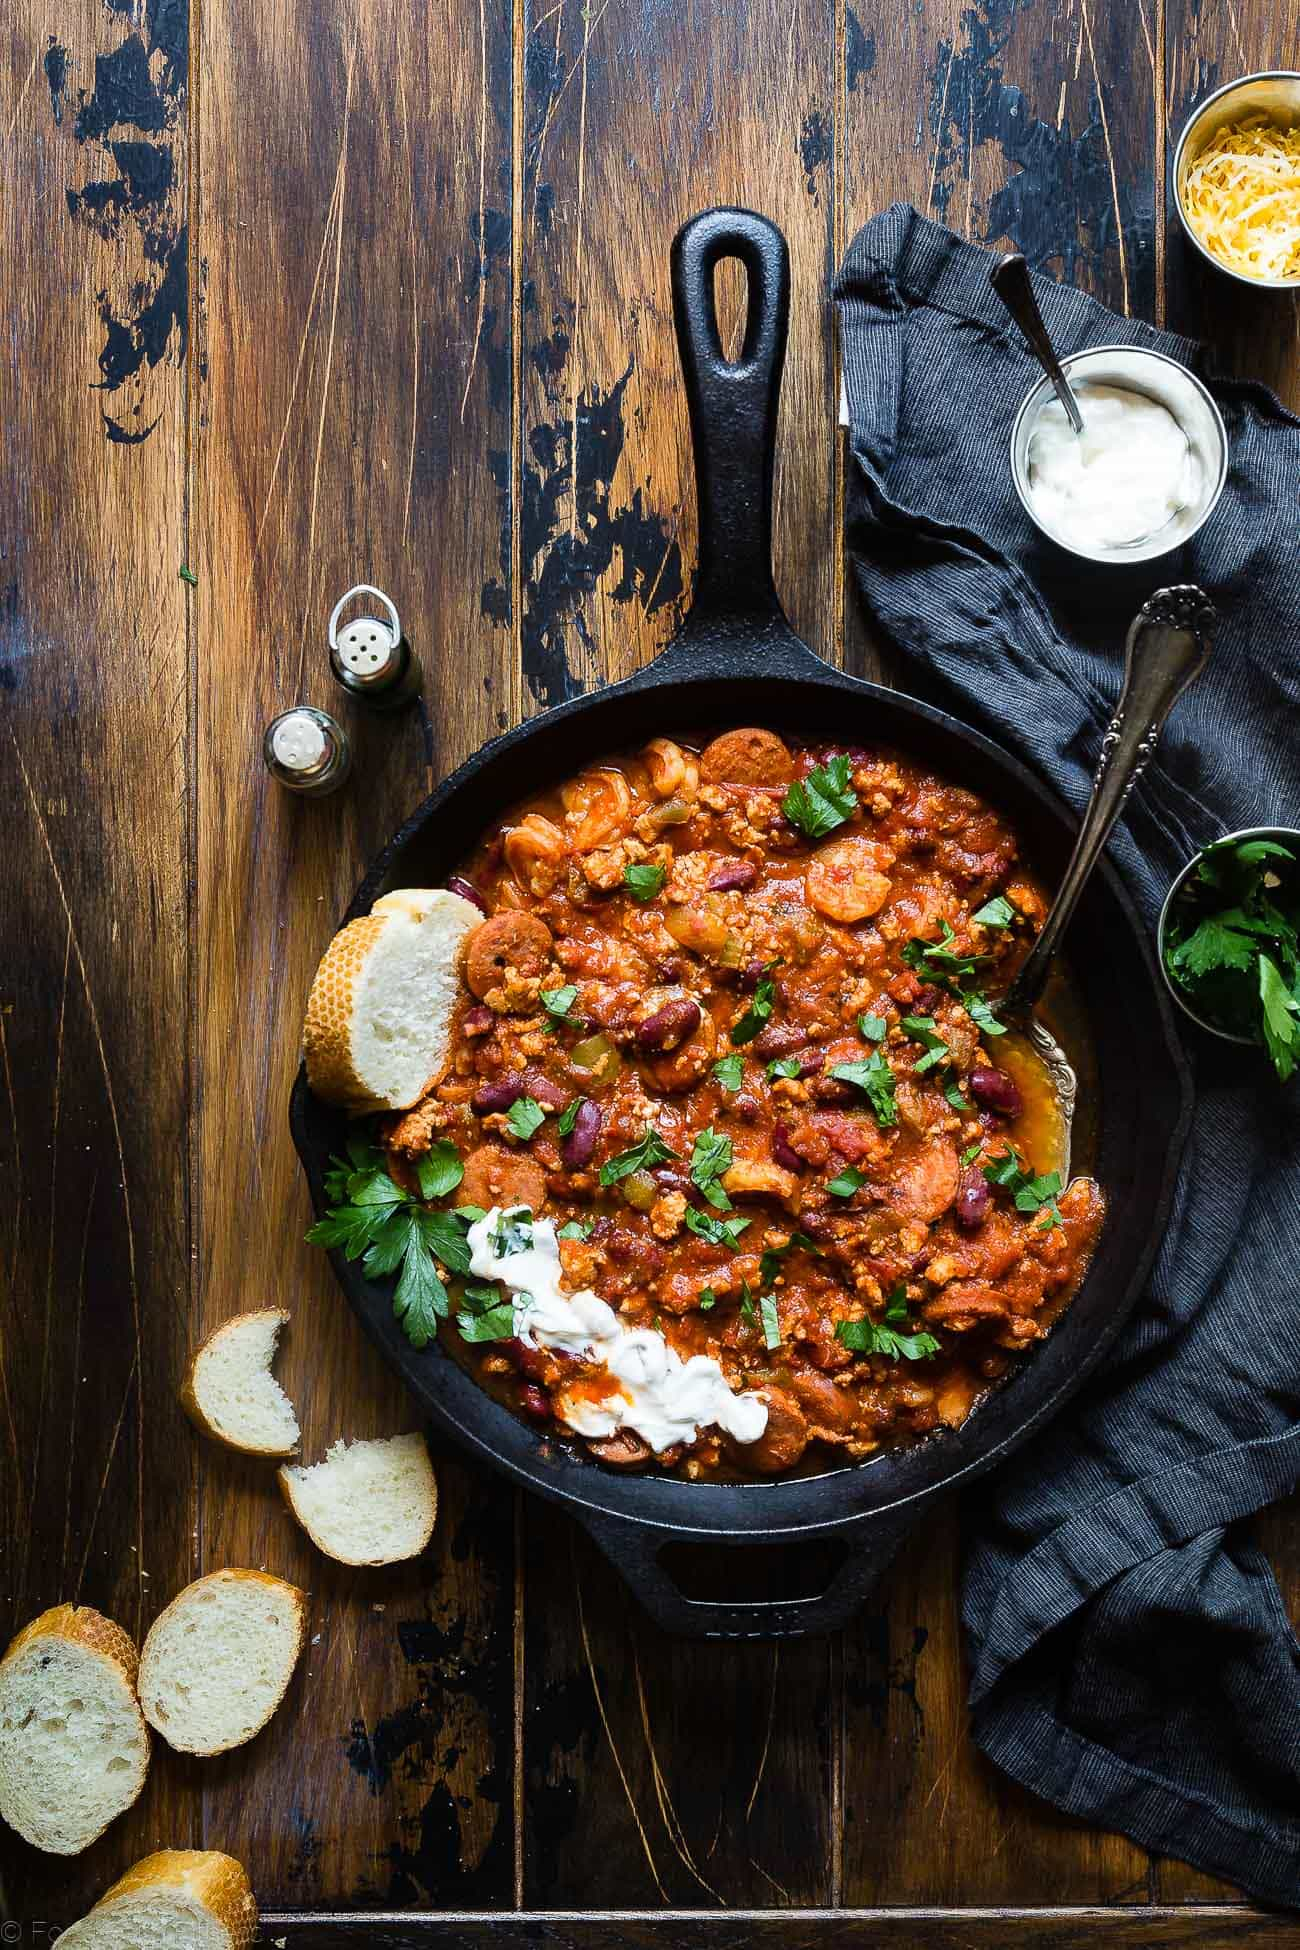 Instant Pot Cajun Chili - This quick and easy, healthy Instant Pot chili, with a little Cajun flair, is sure to become a family favorite! It's dairy/grain/gluten free, makes great leftovers and freezes great! Perfect for meal prep! | Foodfaithfitness.com | @FoodFaithFit